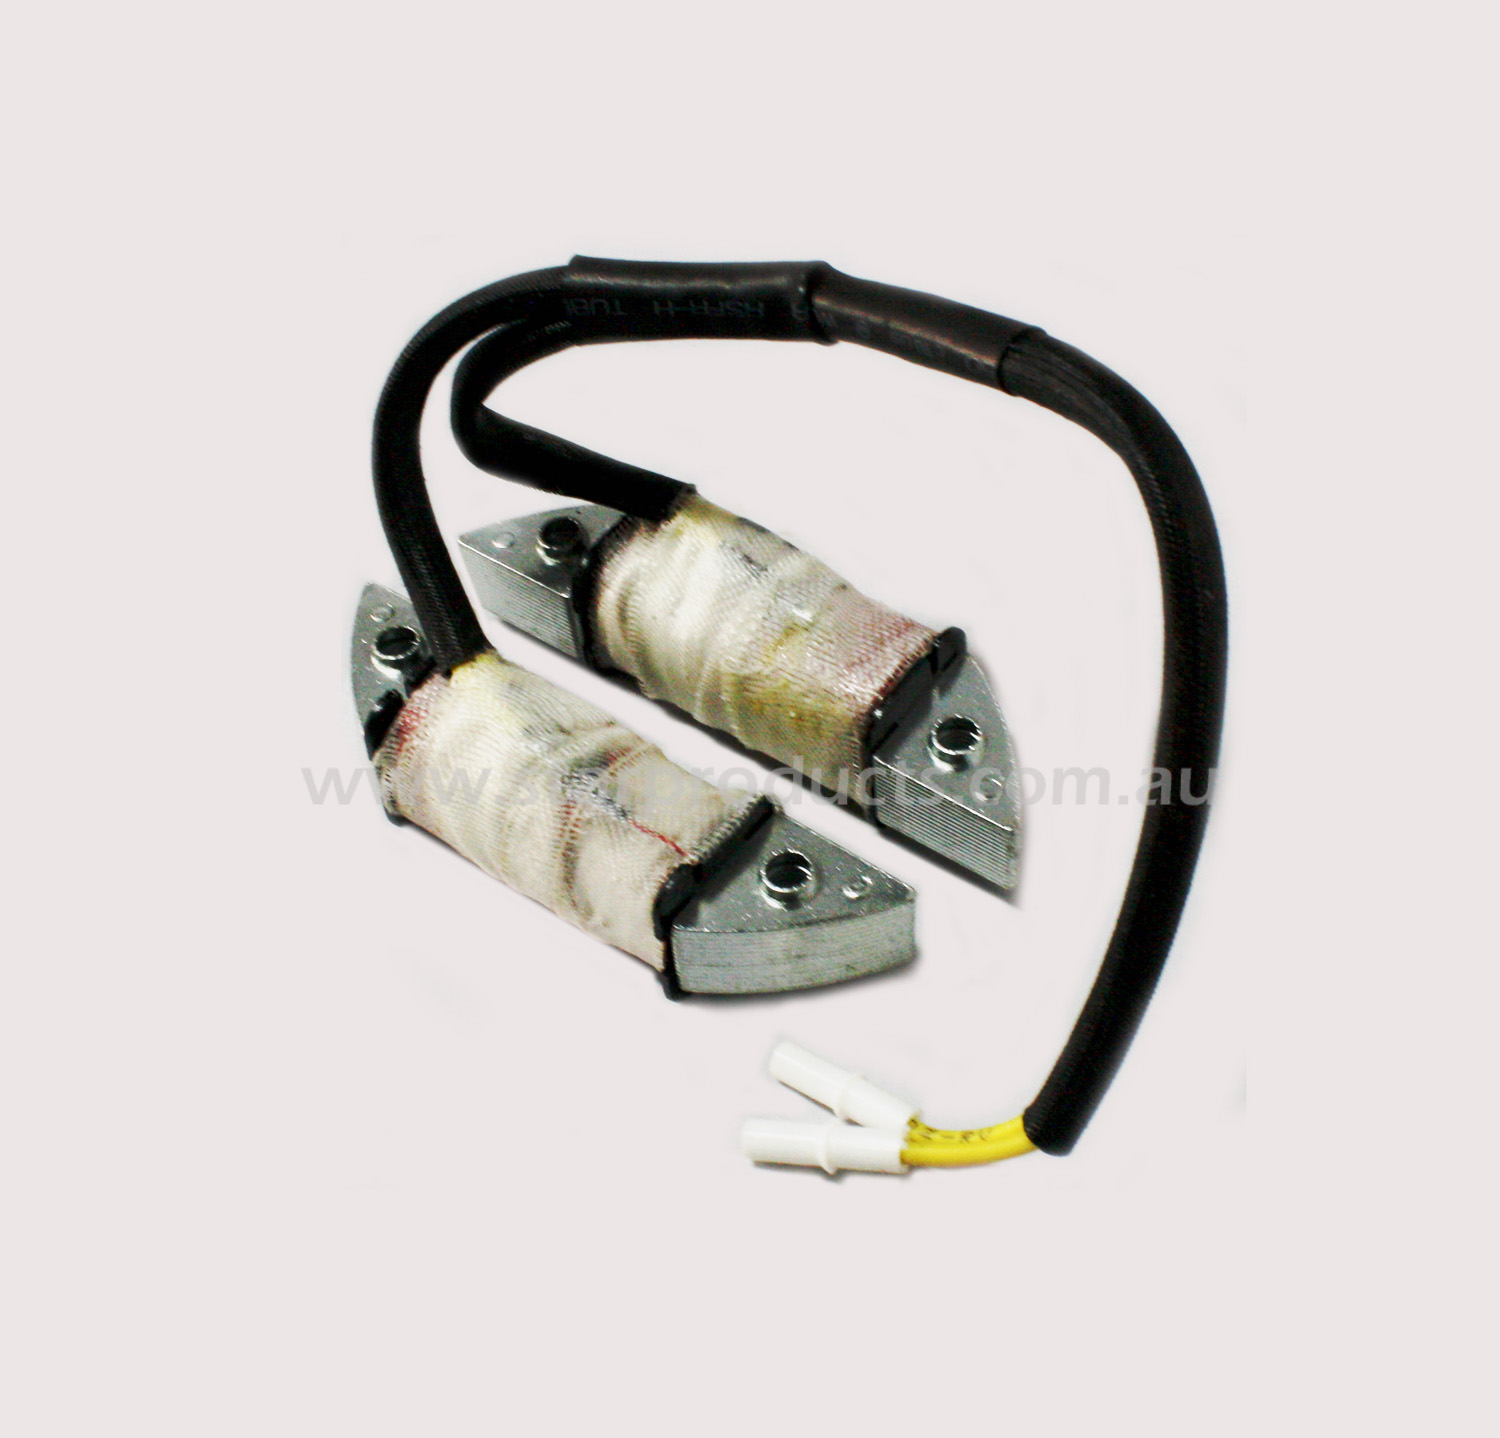 Charge Coil / Stator / Magneto suit LONCIN 16hp Vertical Shaft